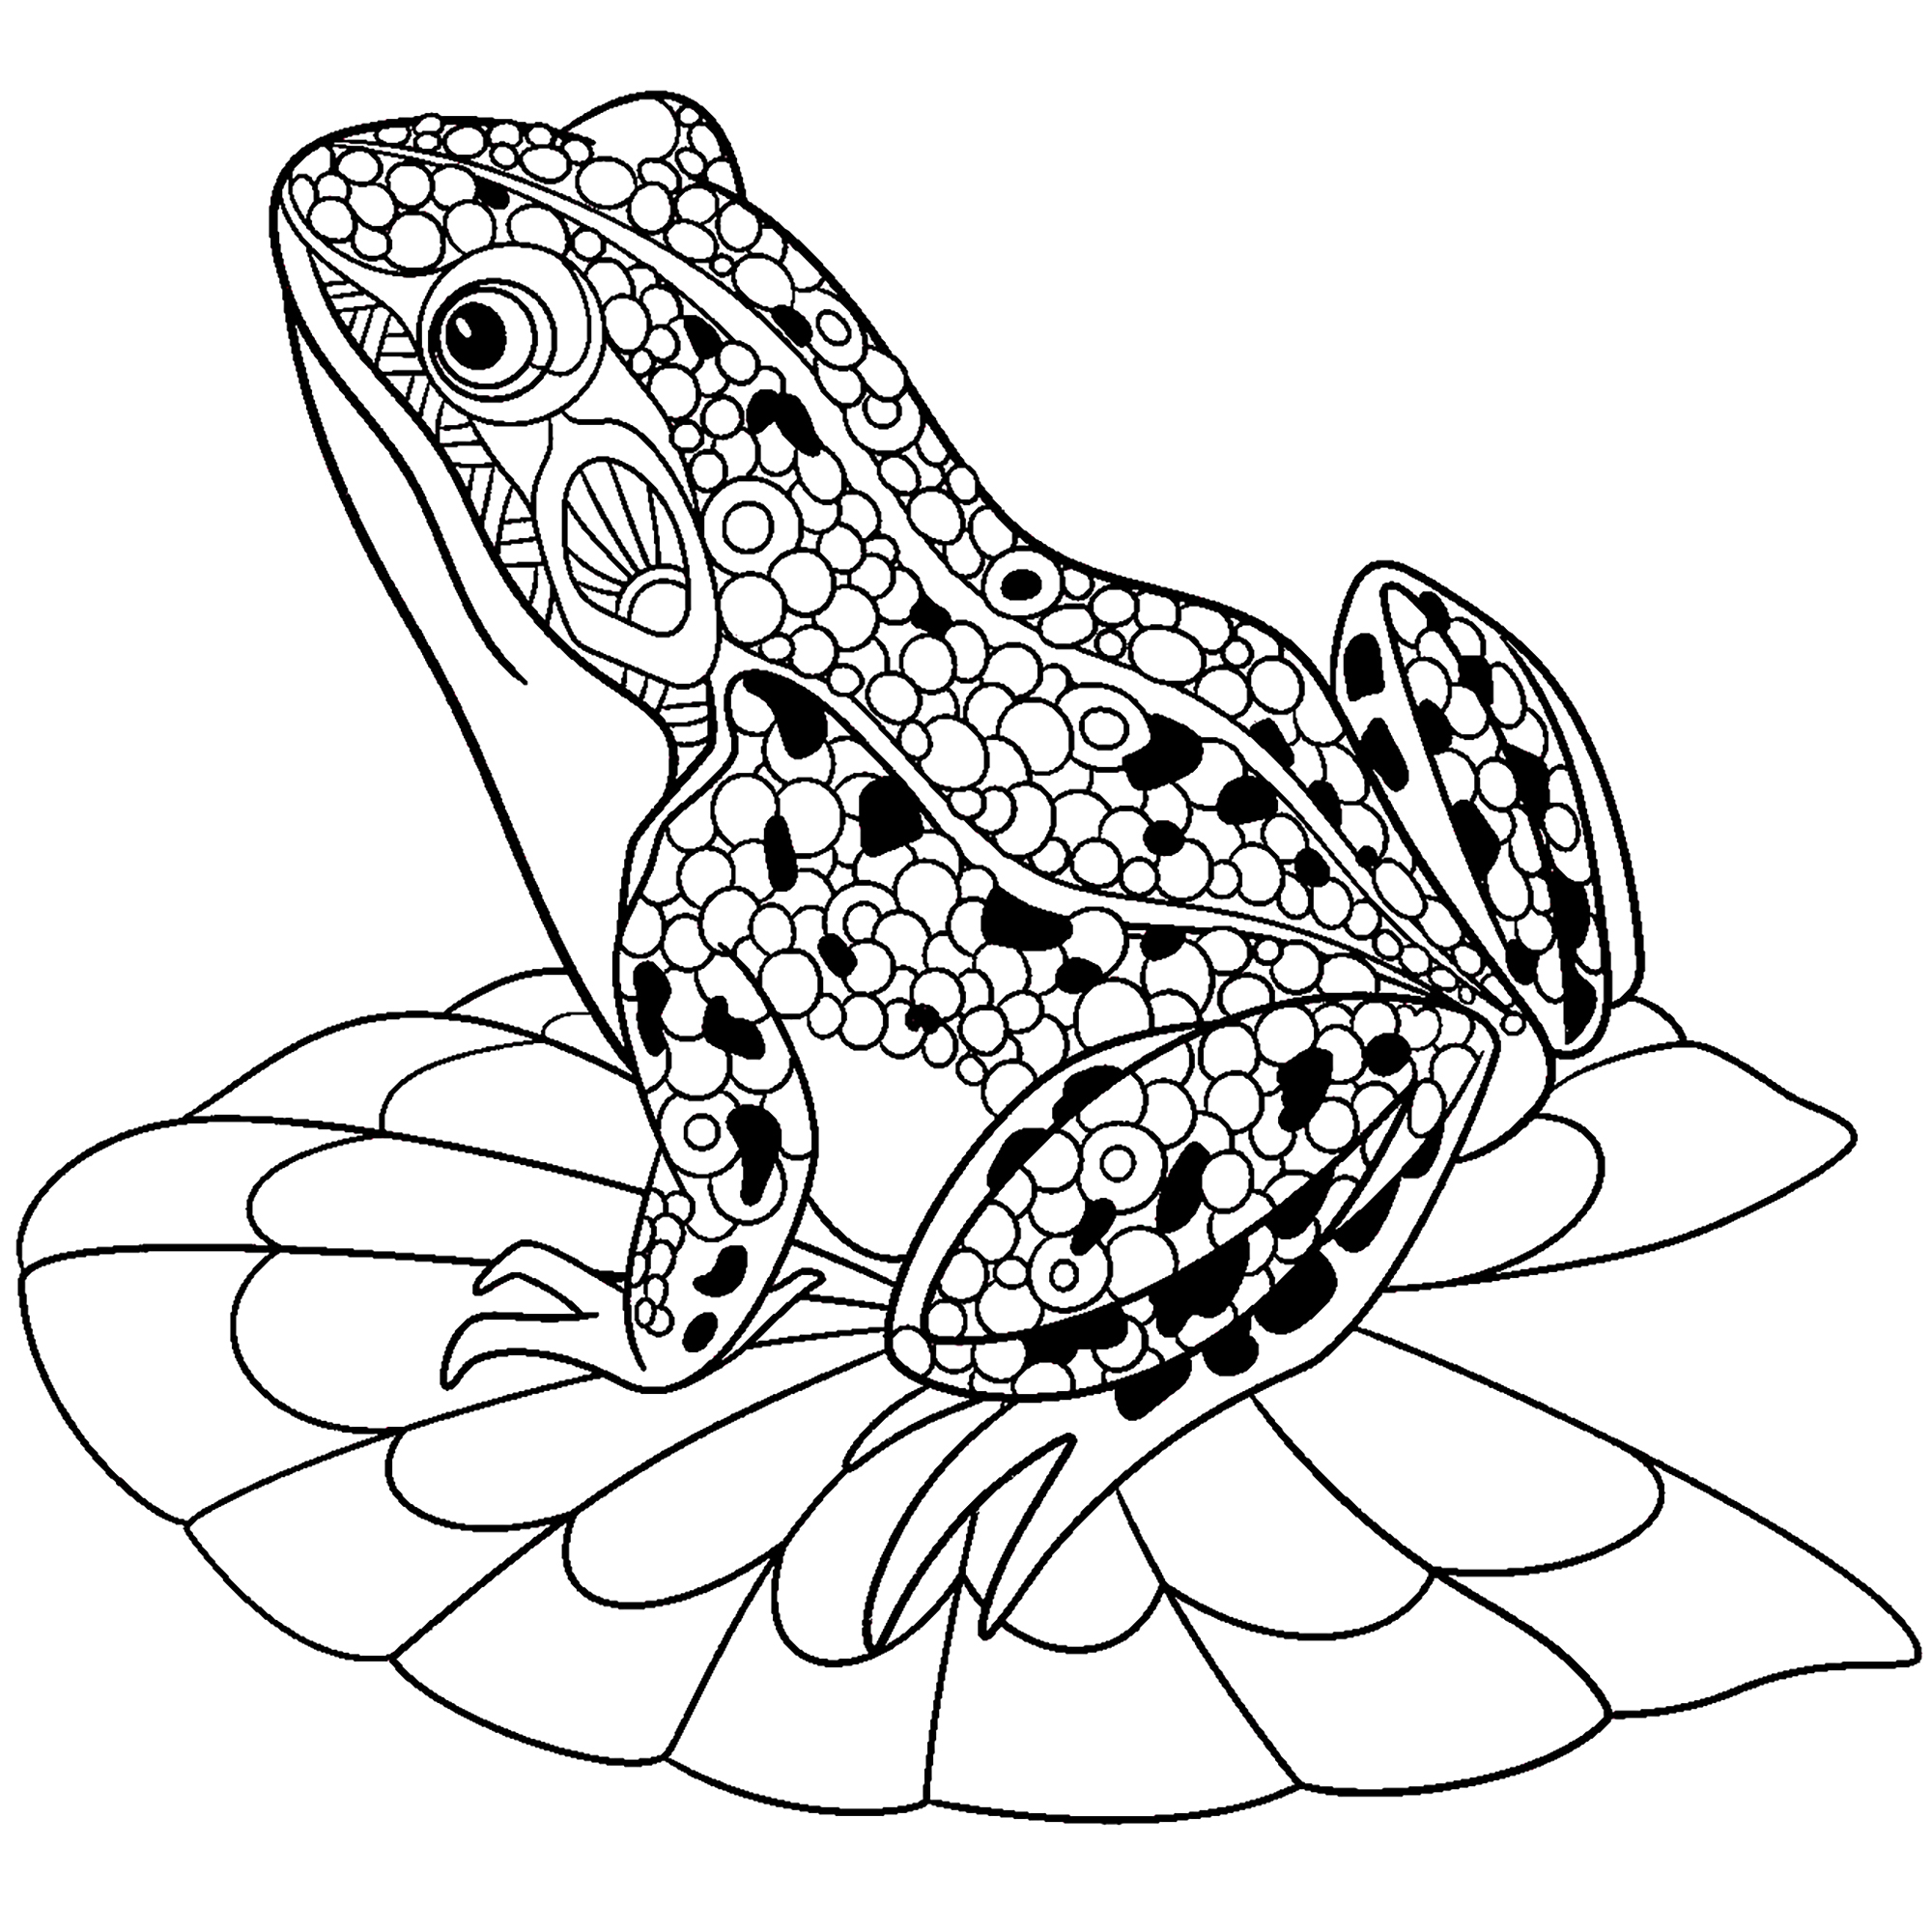 frog coloring book frogs free to color for children frogs kids coloring pages coloring book frog